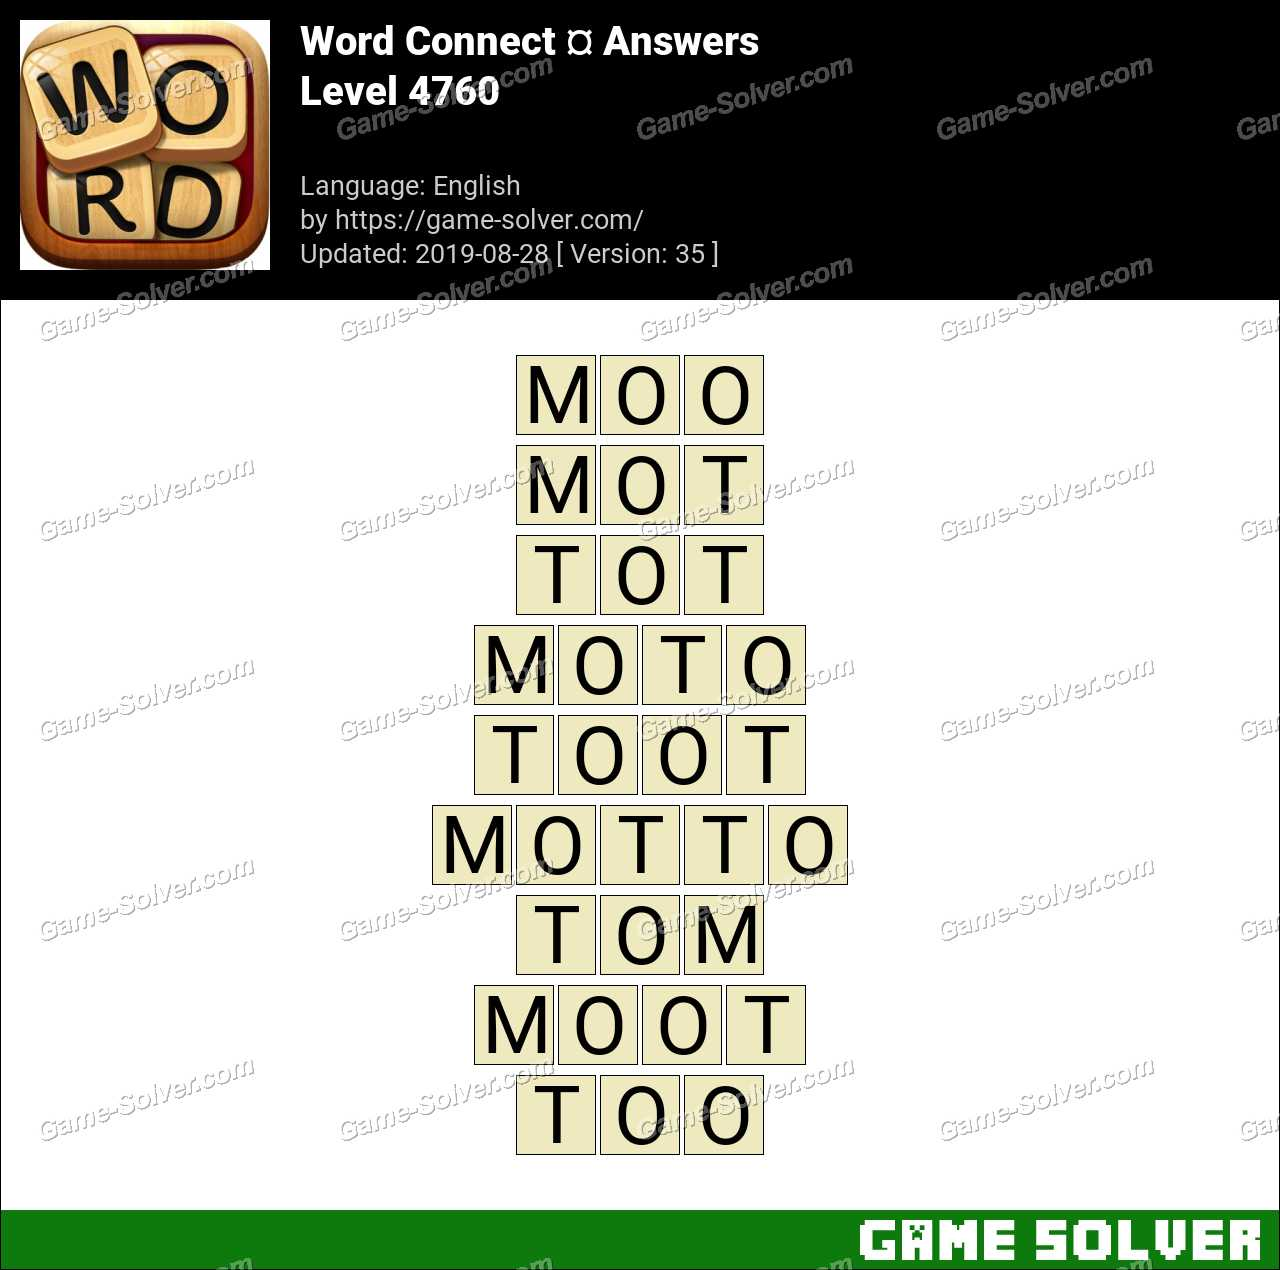 Word Connect Level 4760 Answers